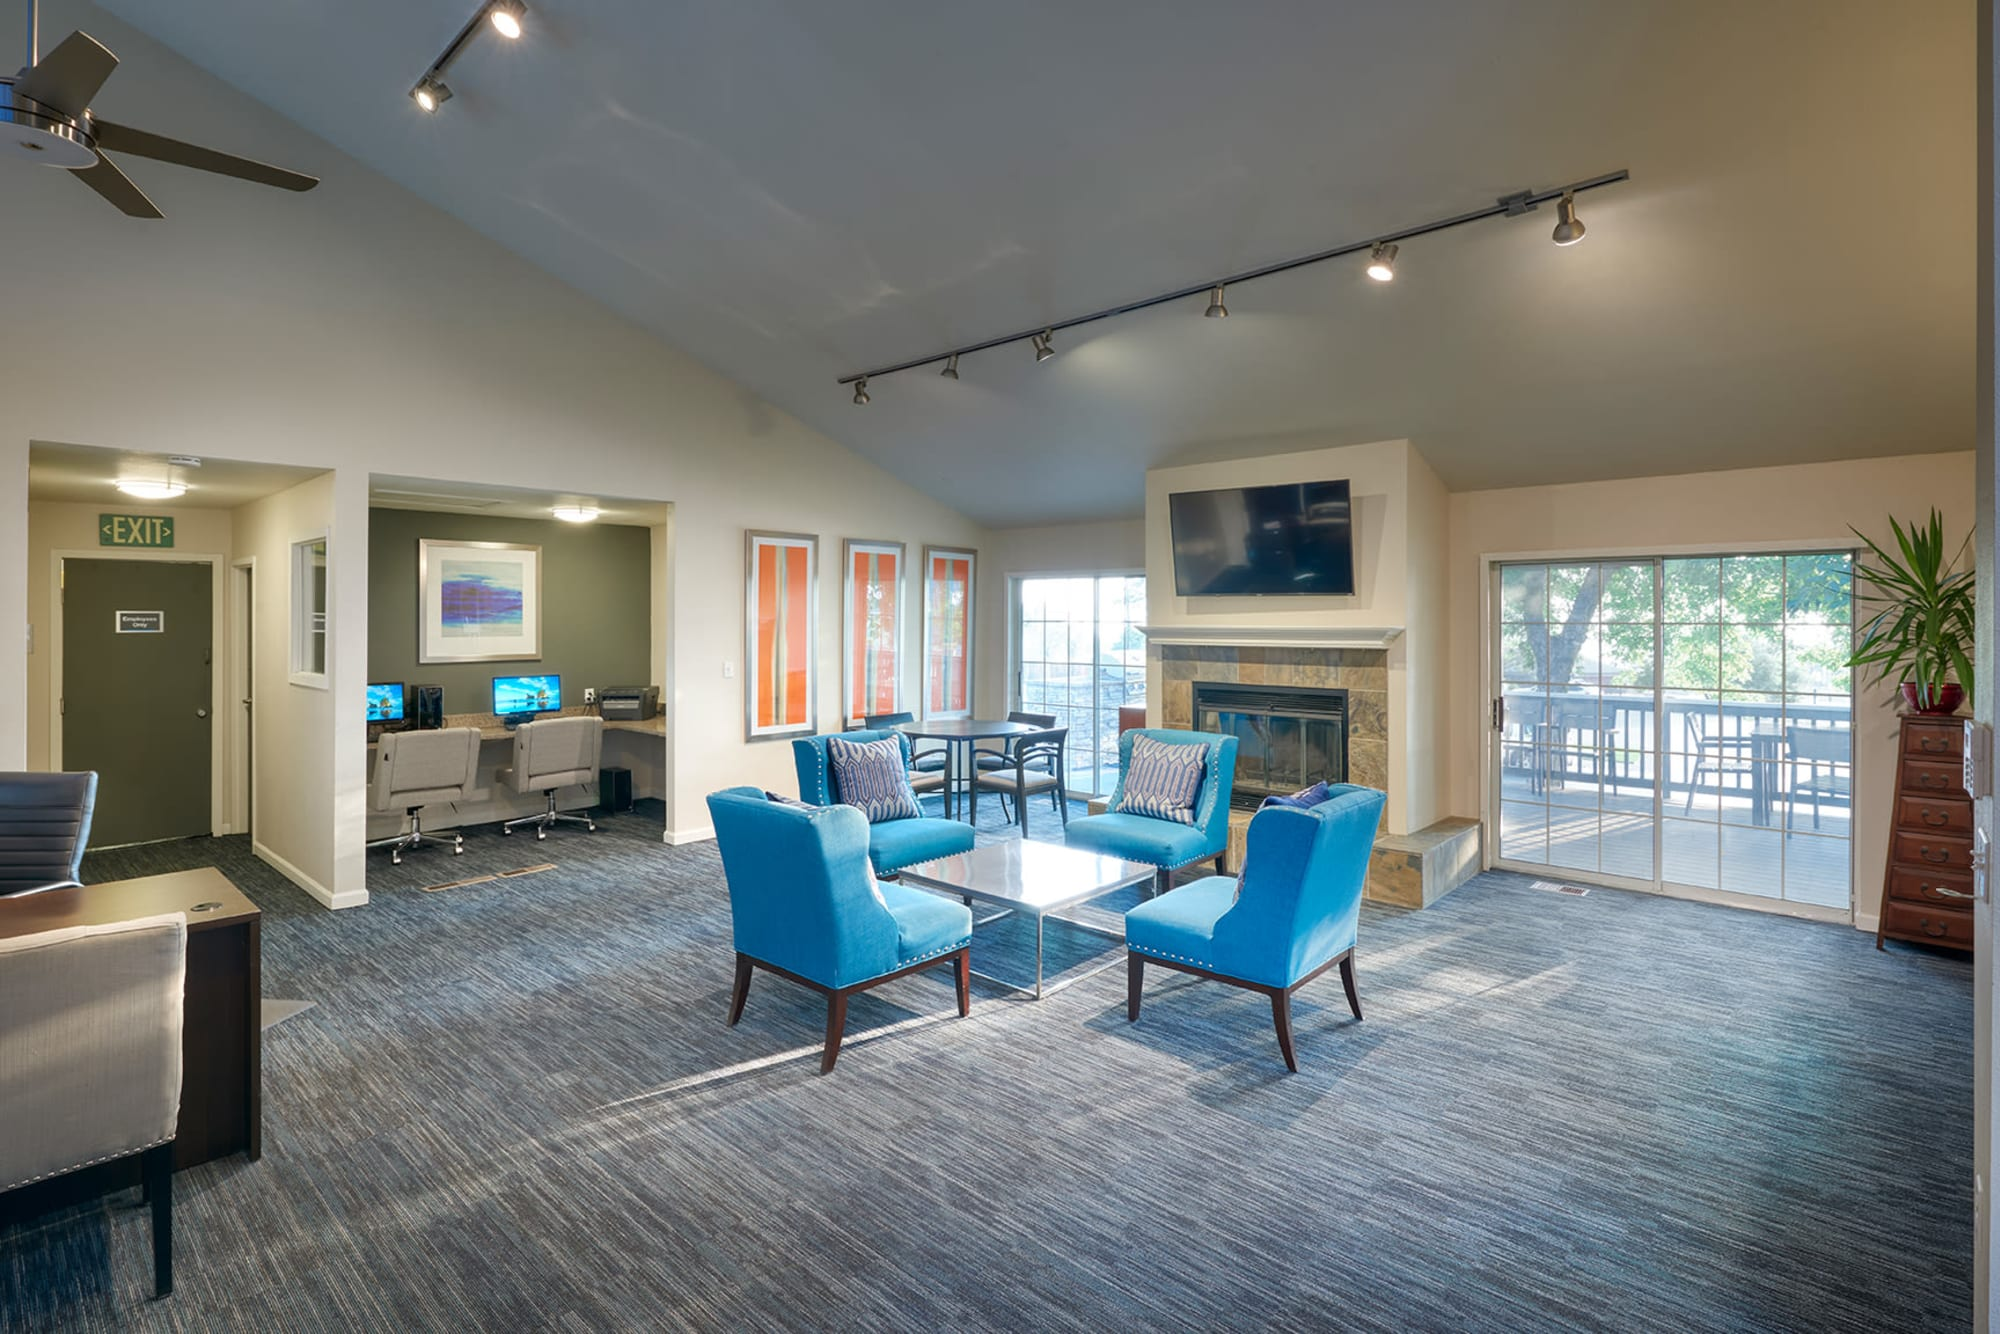 Community clubhouse seating at Bluesky Landing Apartments in Lakewood, Colorado